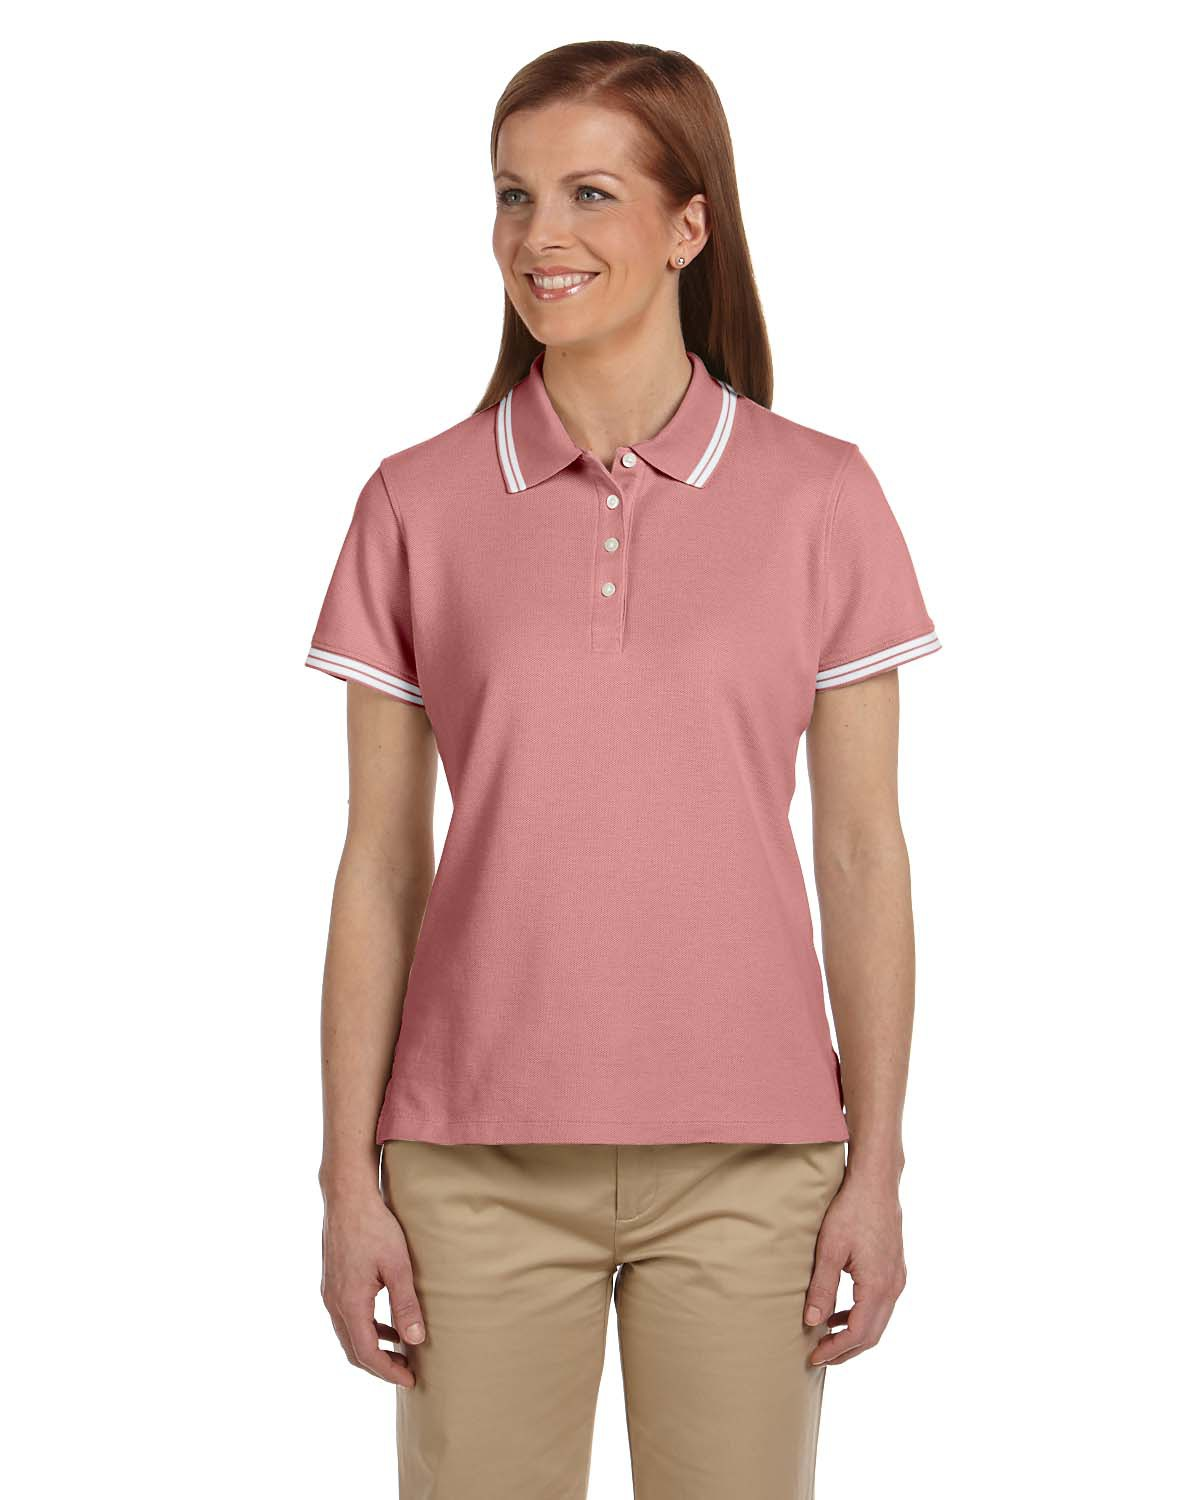 Chestnut Hill CH113W  Women's Tipped Performance Plus Pique Polo